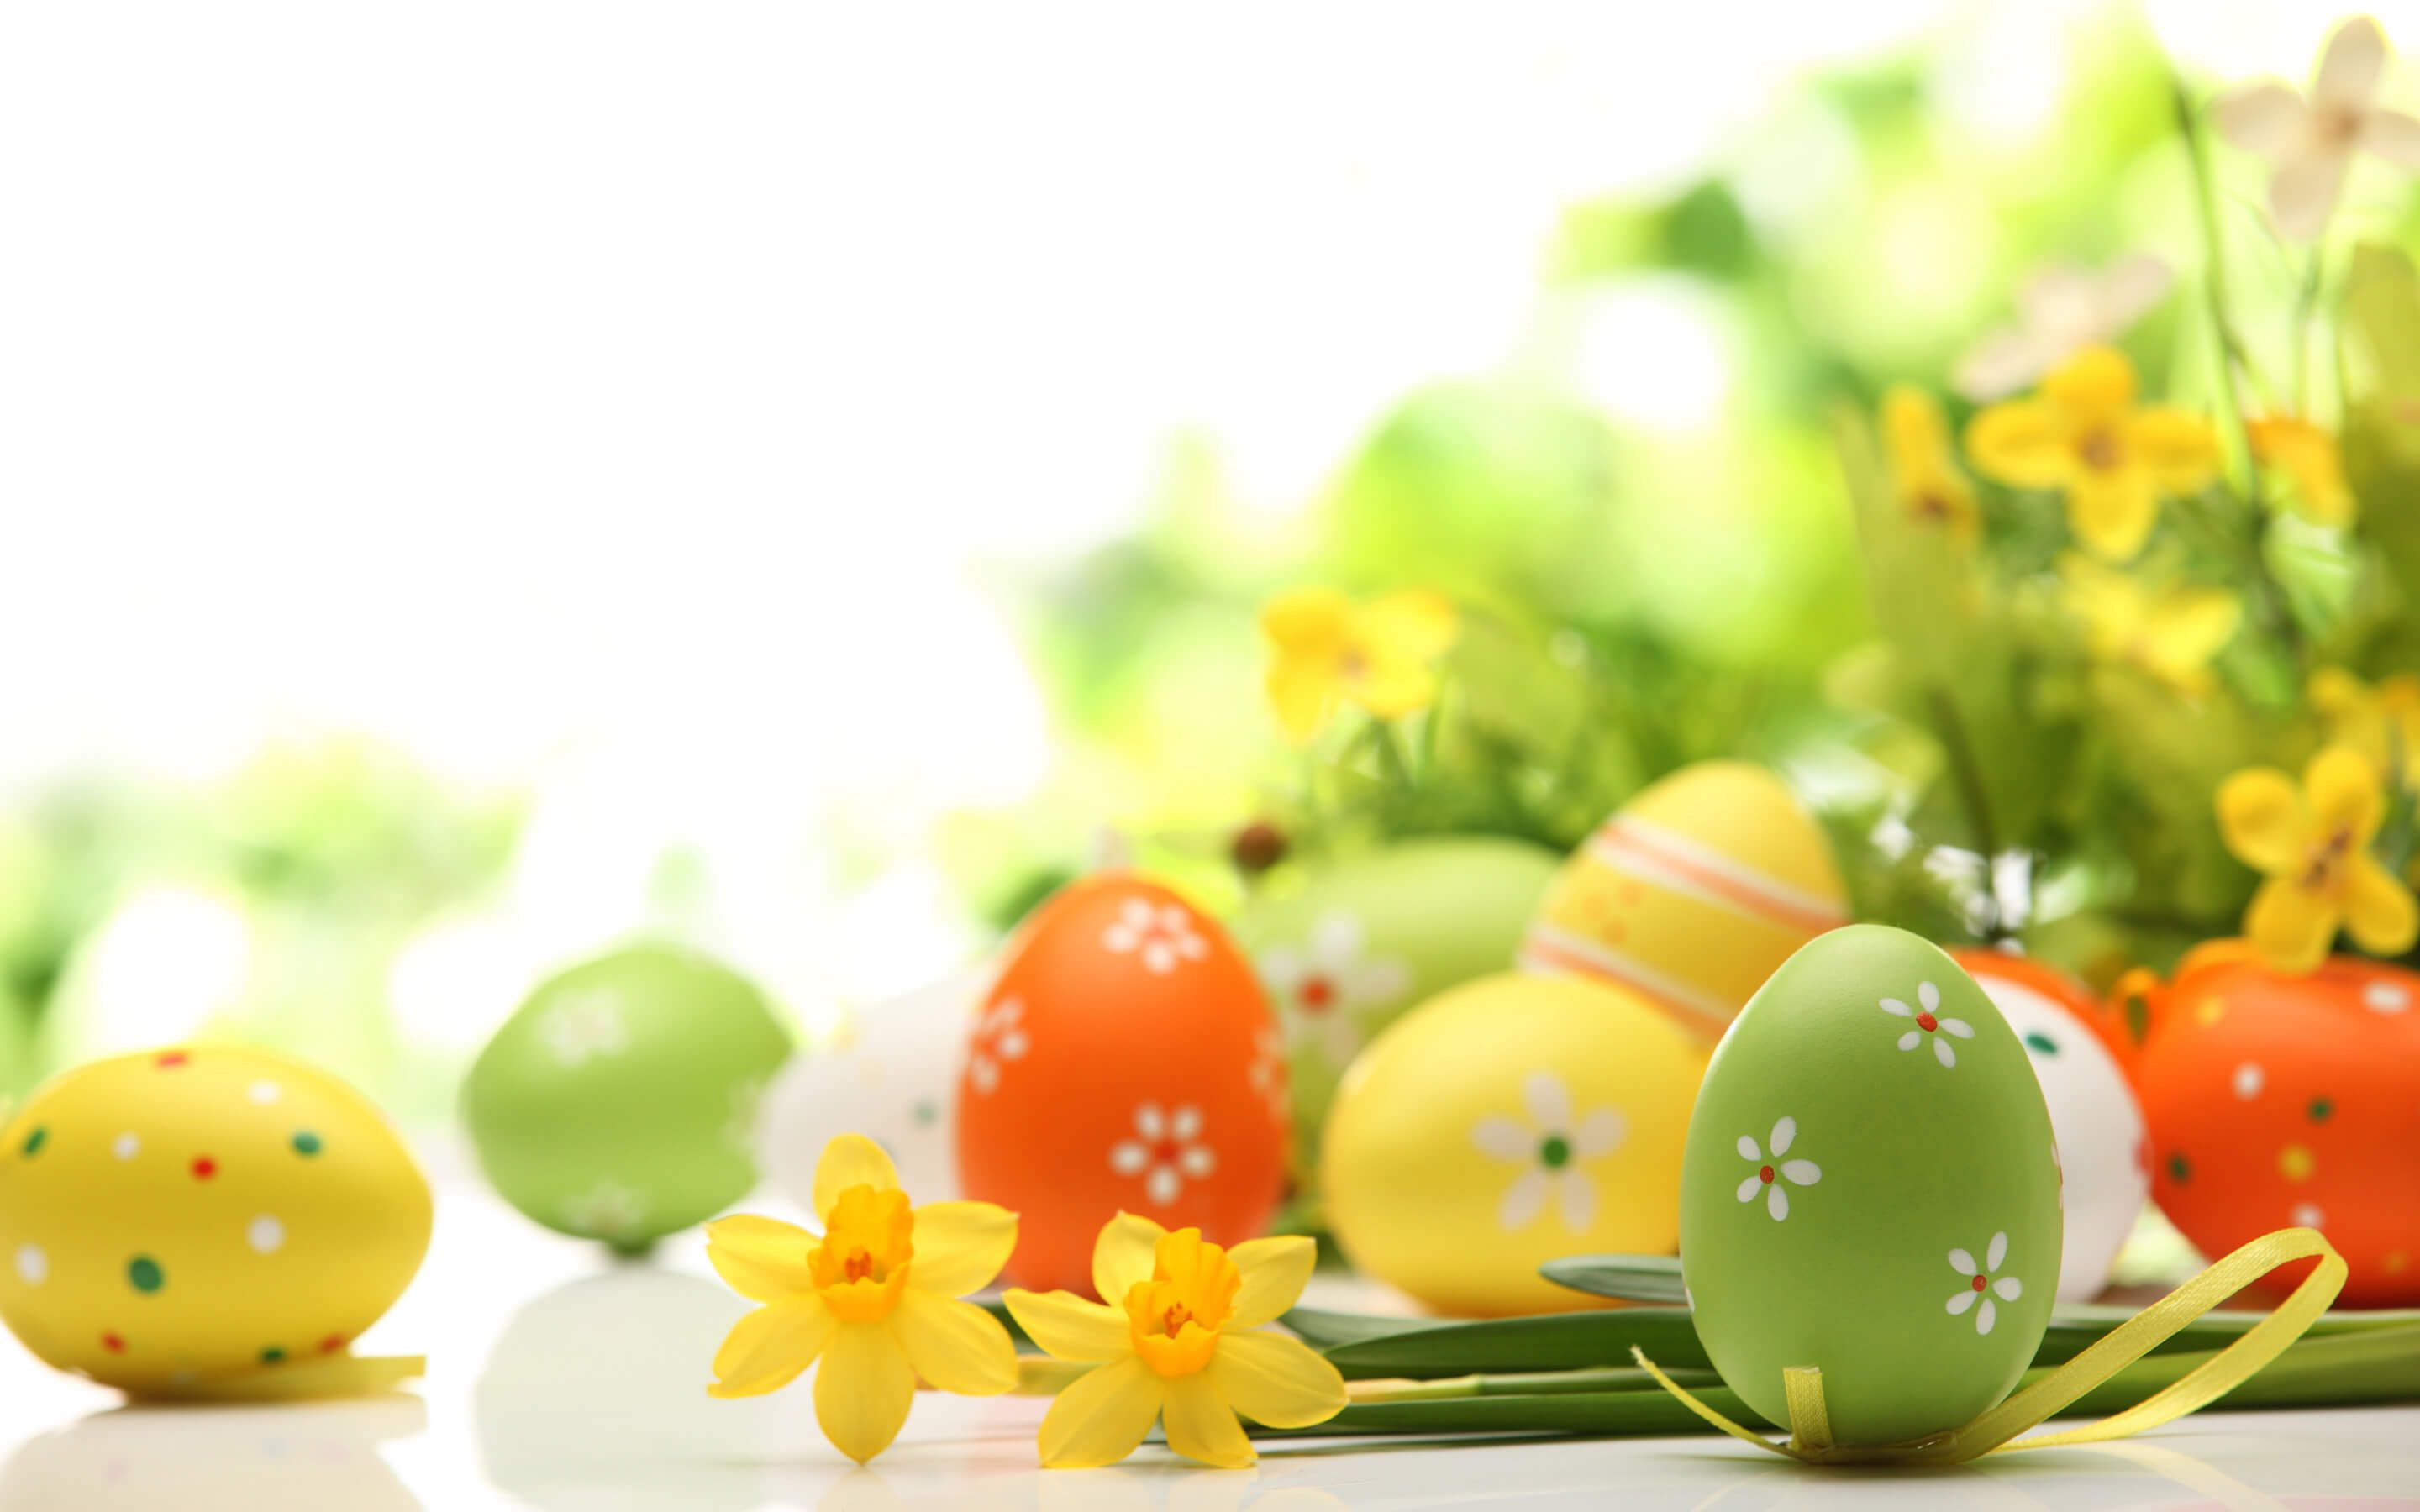 Pin by jitendra Singh on Easter Wallpapers | Pinterest | Easter ...